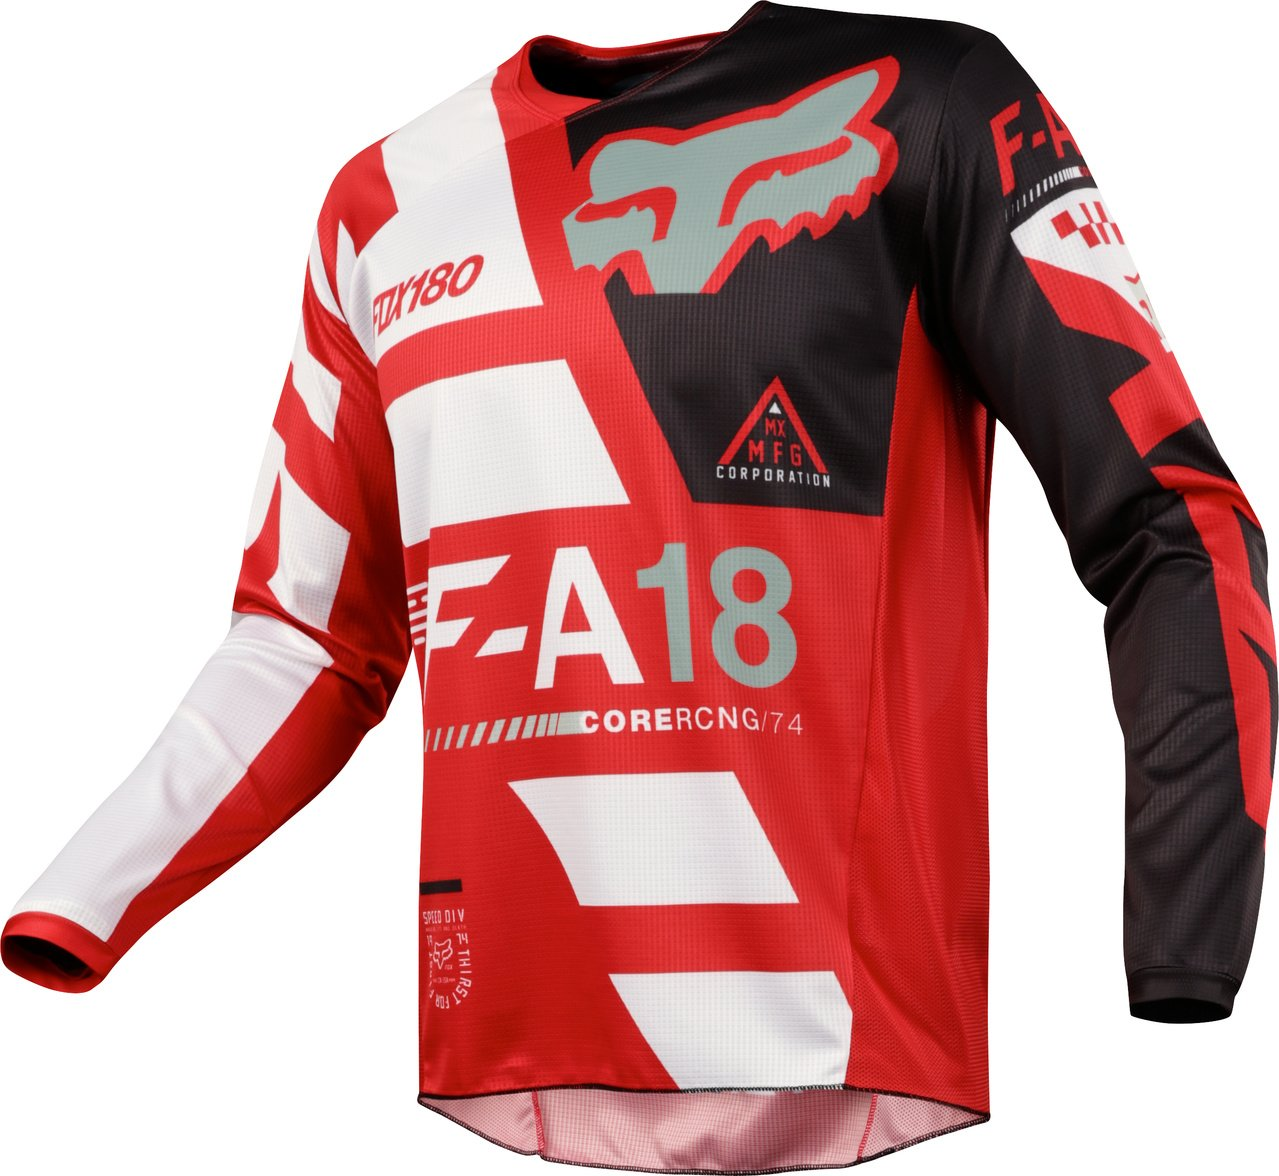 Fox Racing 180 Sayak Red Jersey/ Pant Youth Combo - Size Y-XLARGE/ 28W by Fox Racing MX (Image #2)